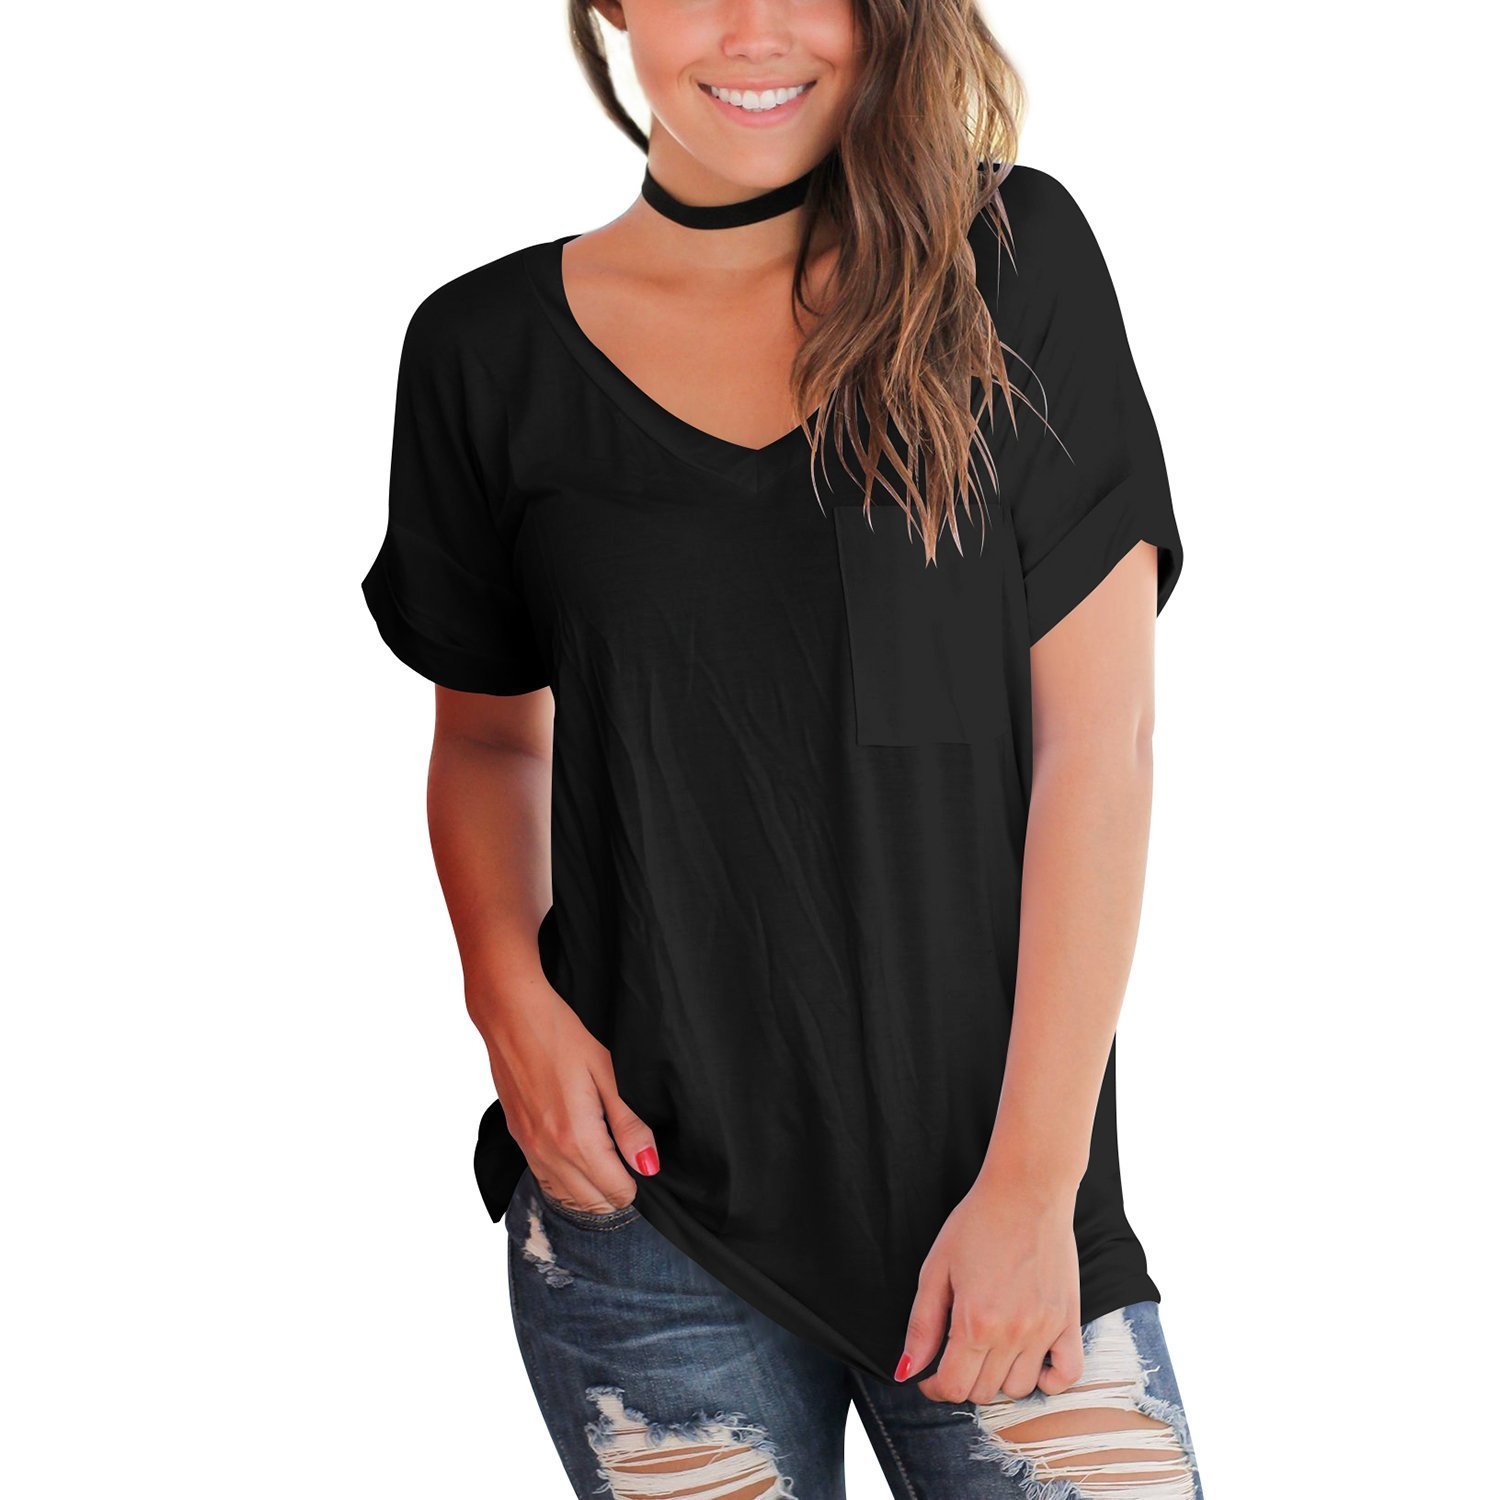 ULATREE Women's Summer Basic Tee V-Neck Casual Loose Fit Short Sleeve Tops with Front Pocket Black 2XL